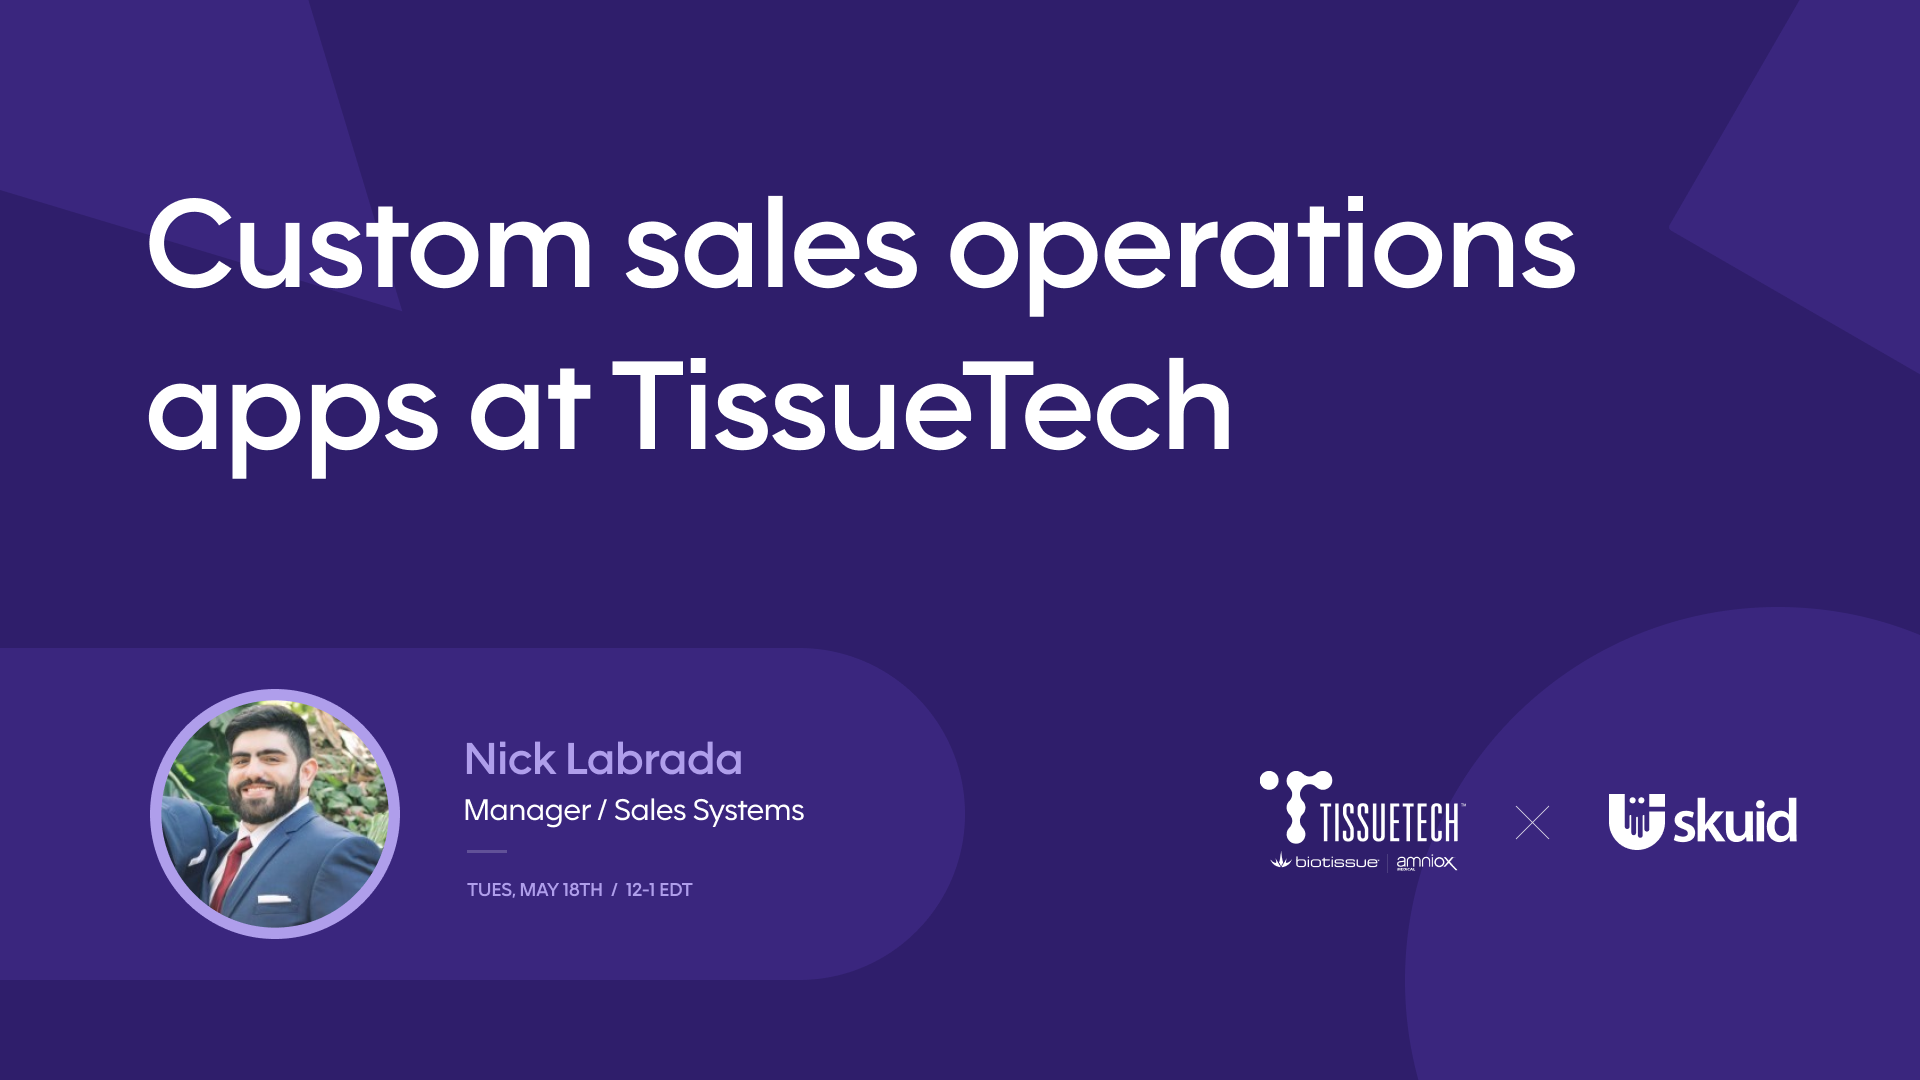 Custom sales operations apps at TissueTech